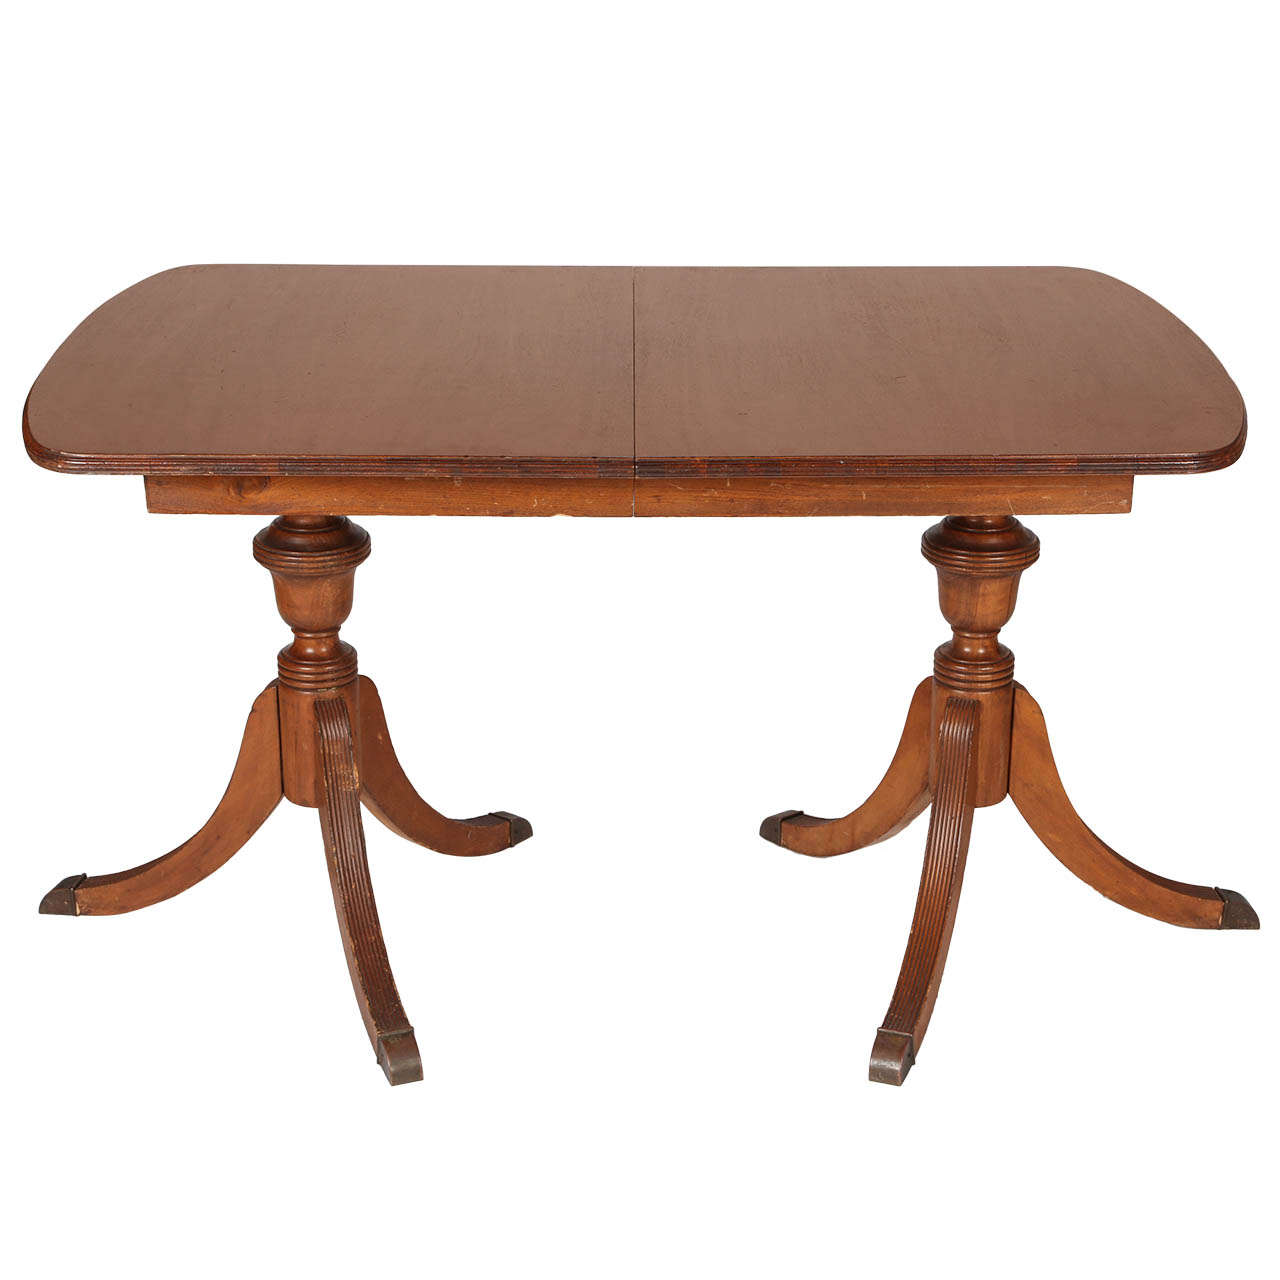 Duncan phyfe style mahogany dining table for sale at 1stdibs for Dining room table styles